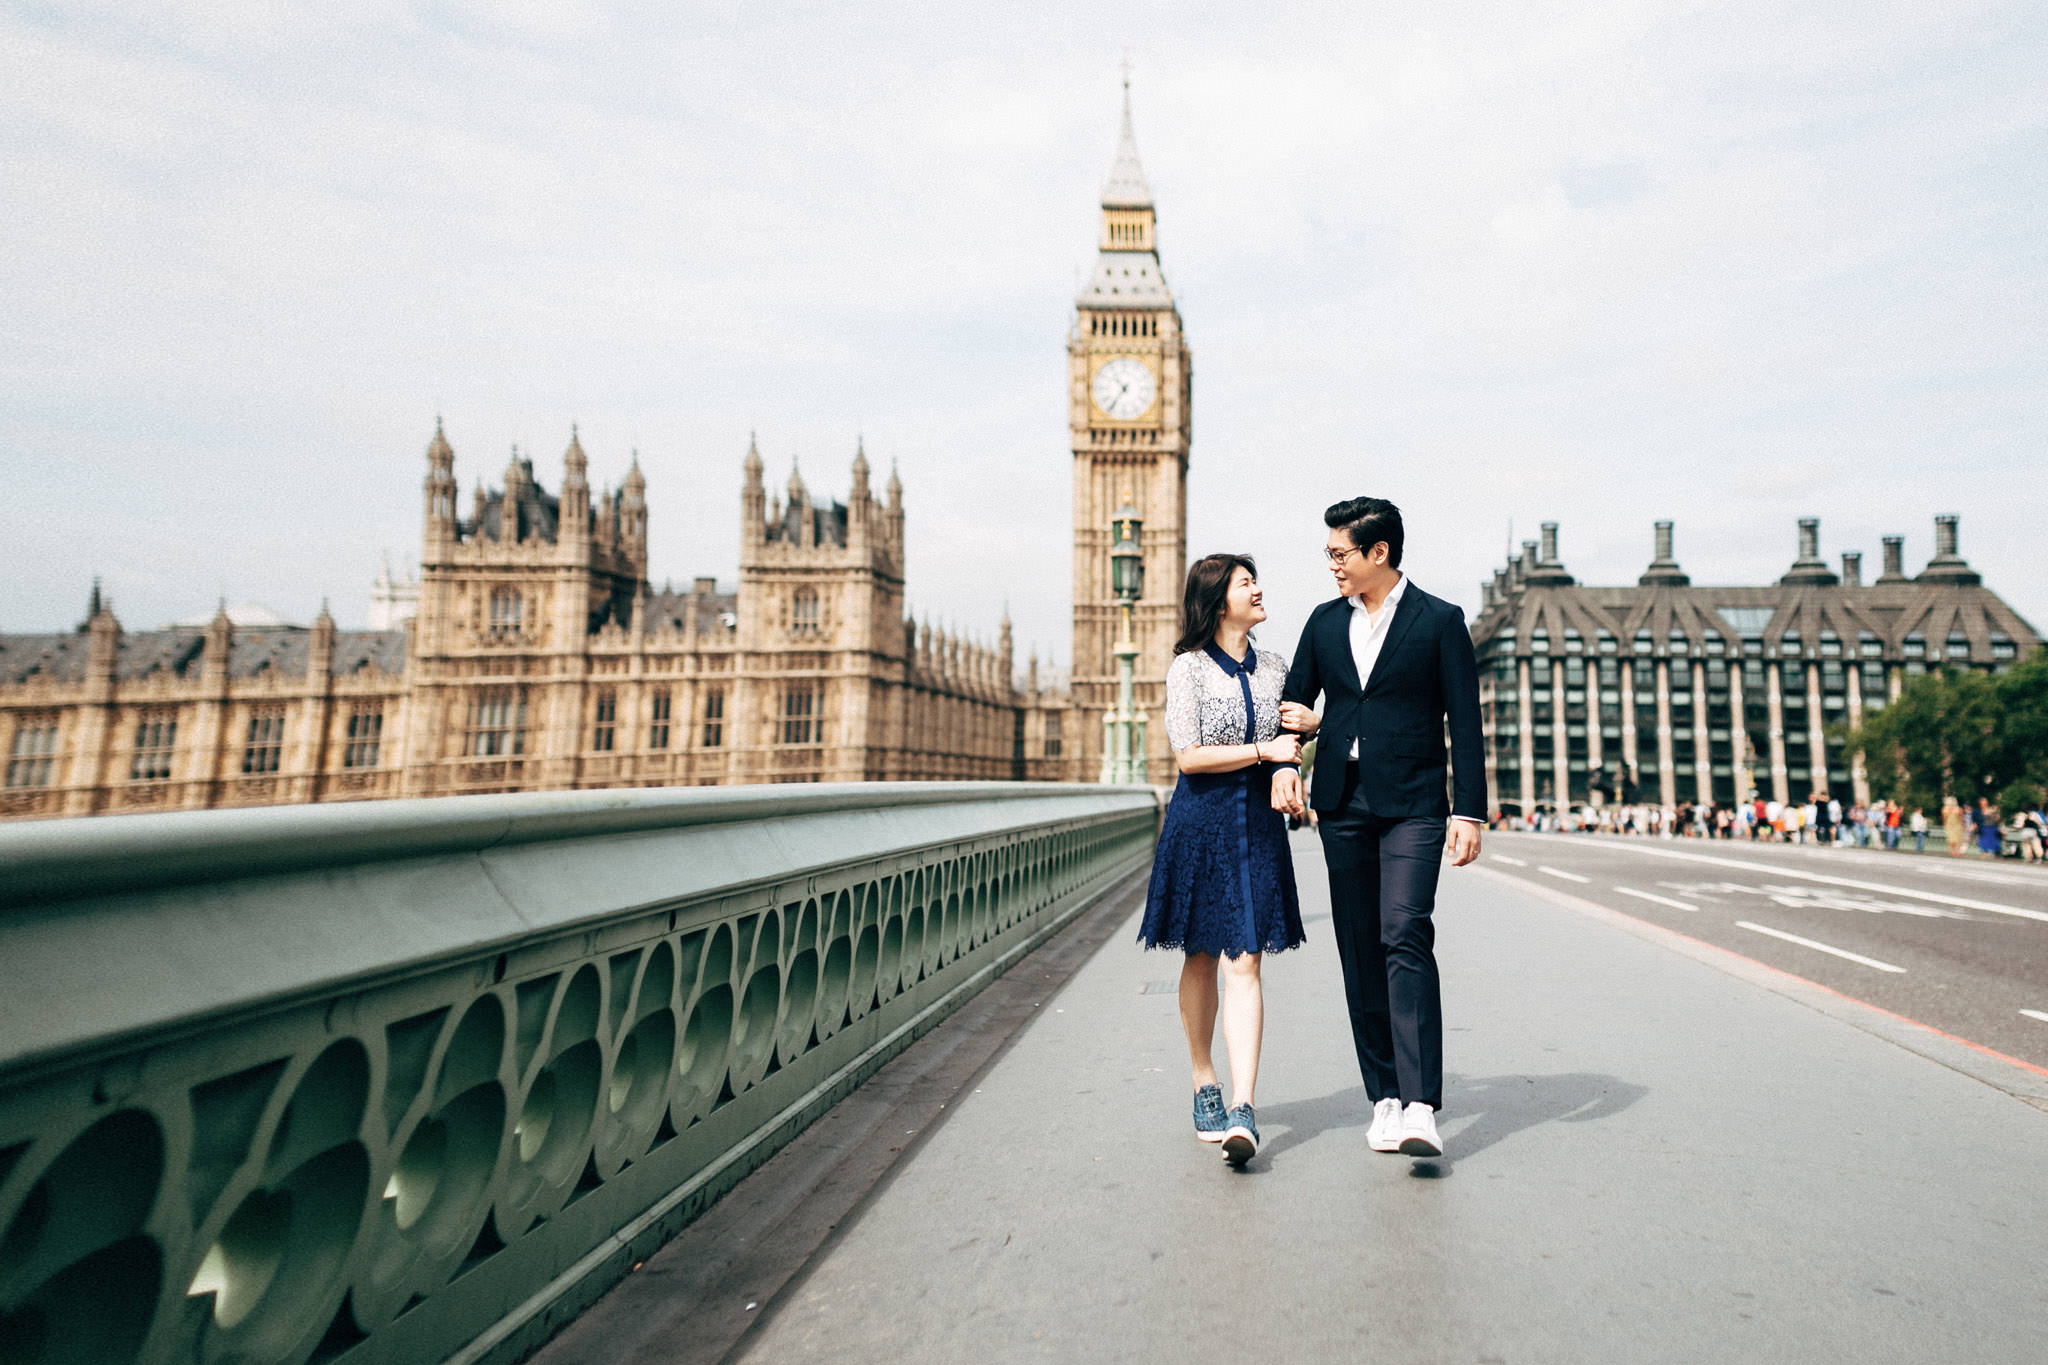 big ben holiday photo shoot in london